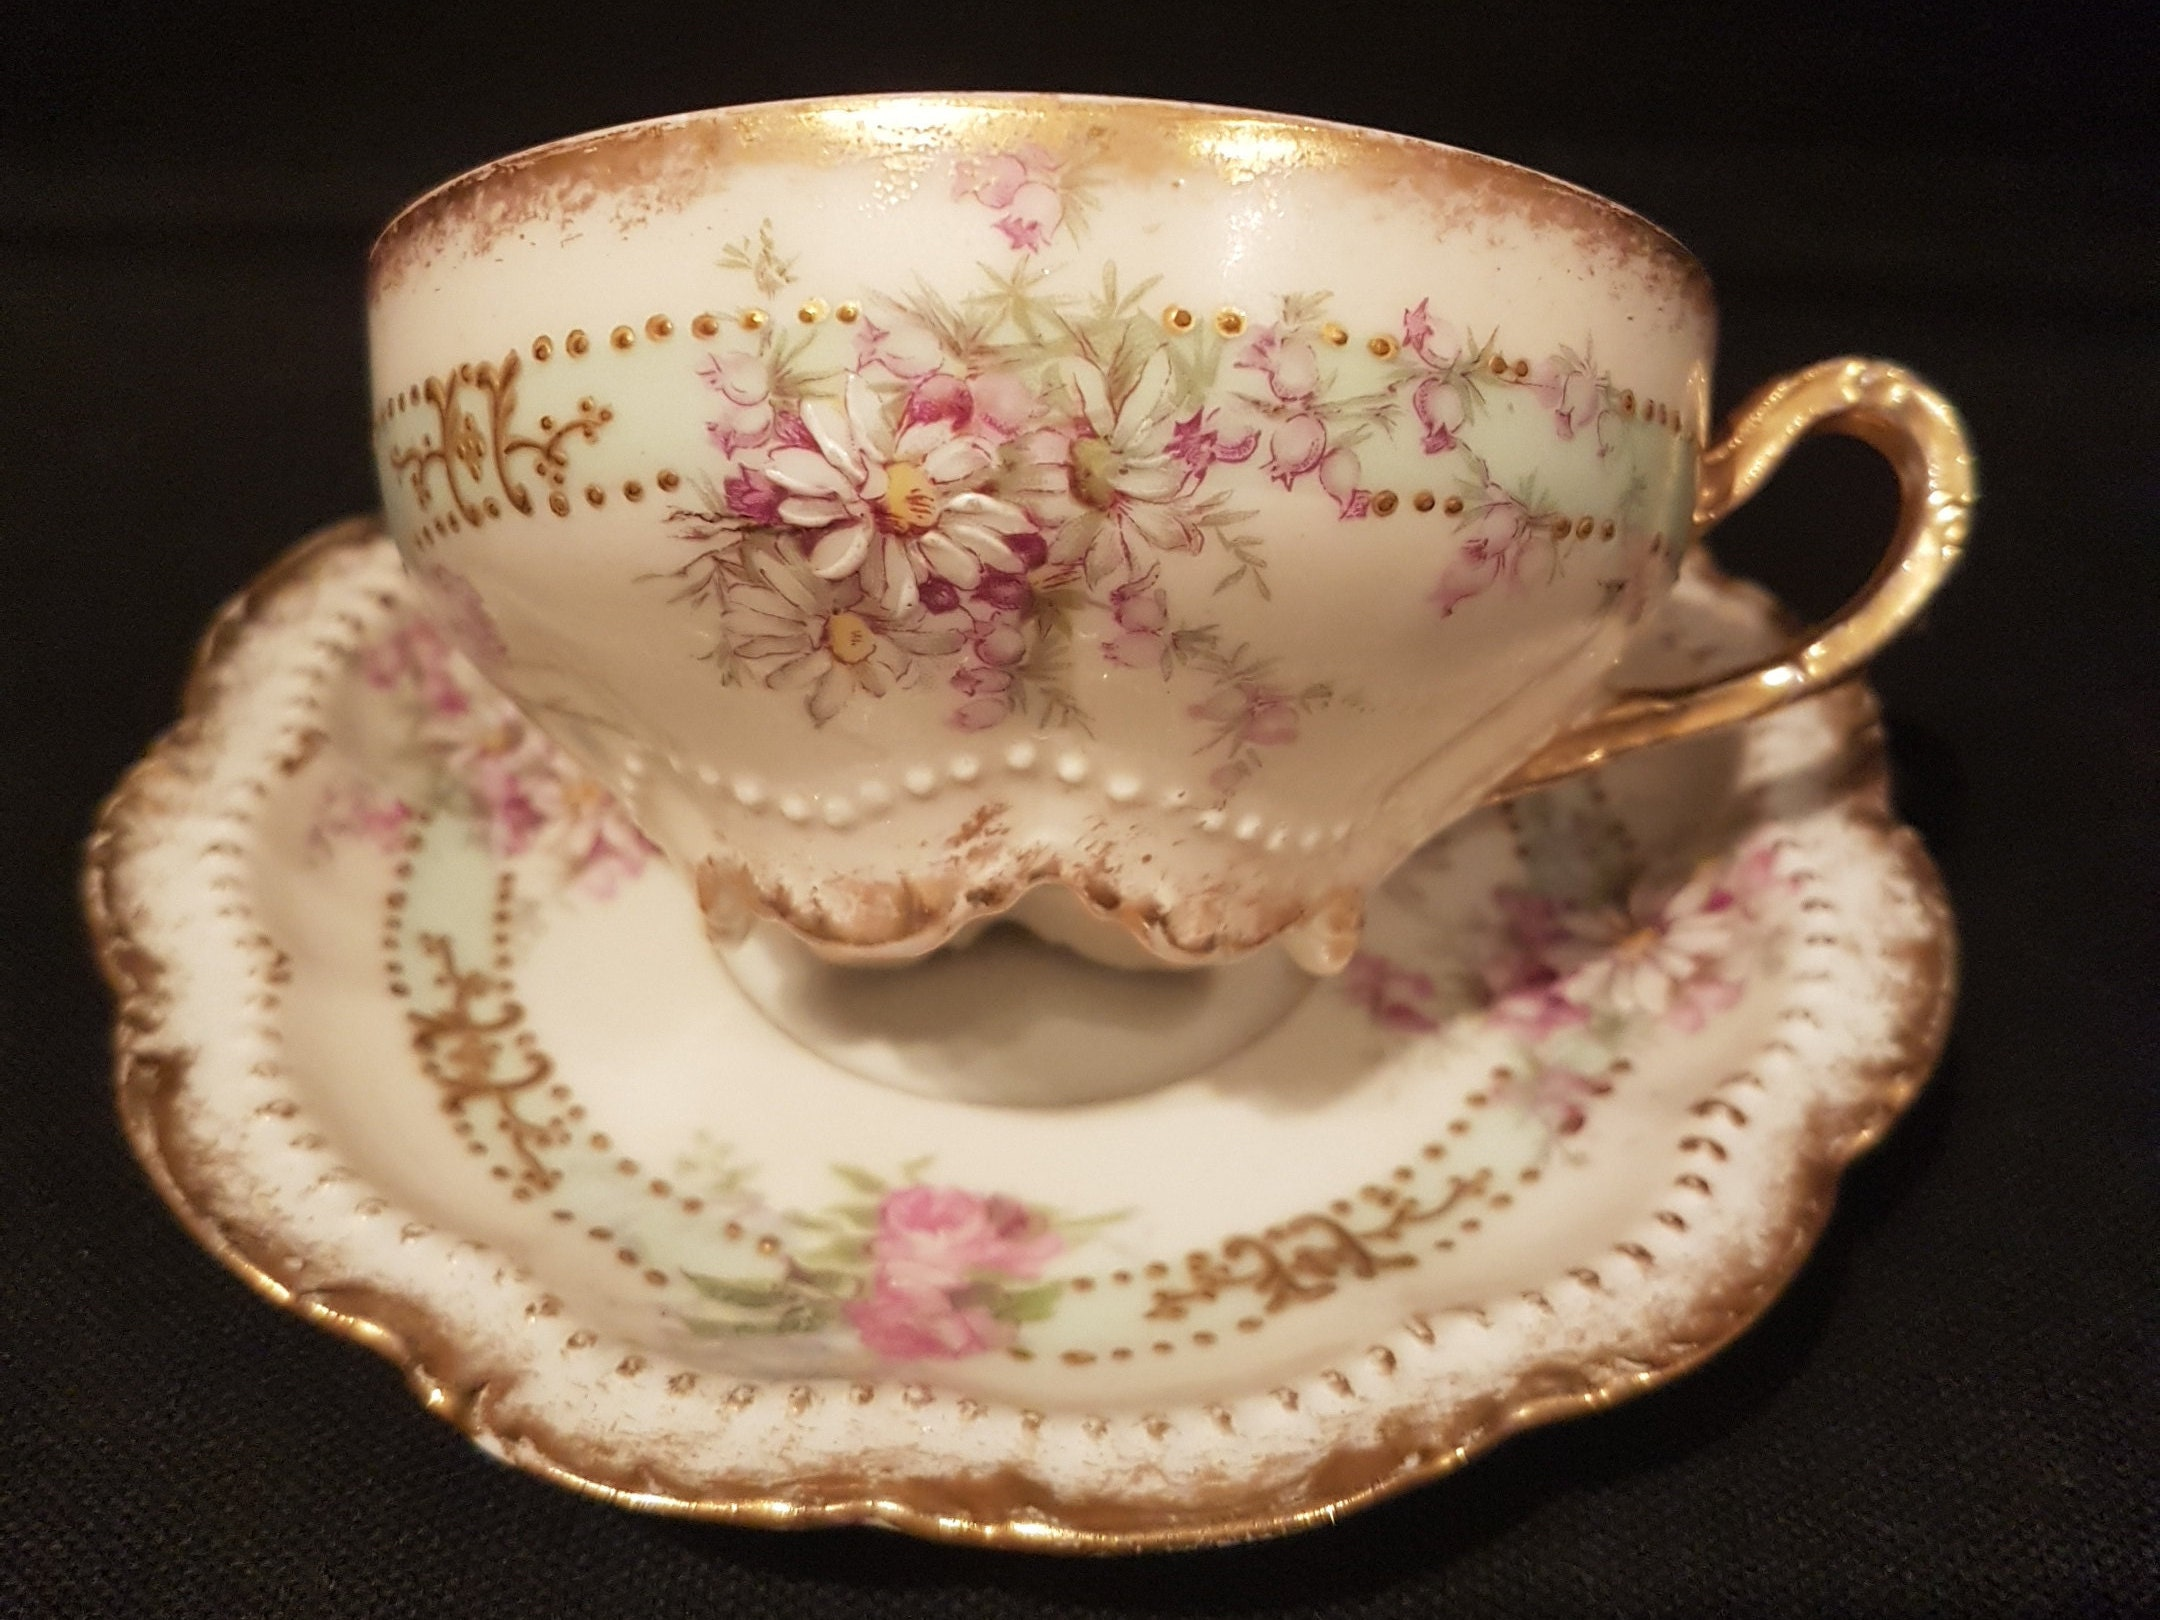 RARE Antique GEORGE BORGFELDT Coronet Limoges France Teacup (1910\'s)